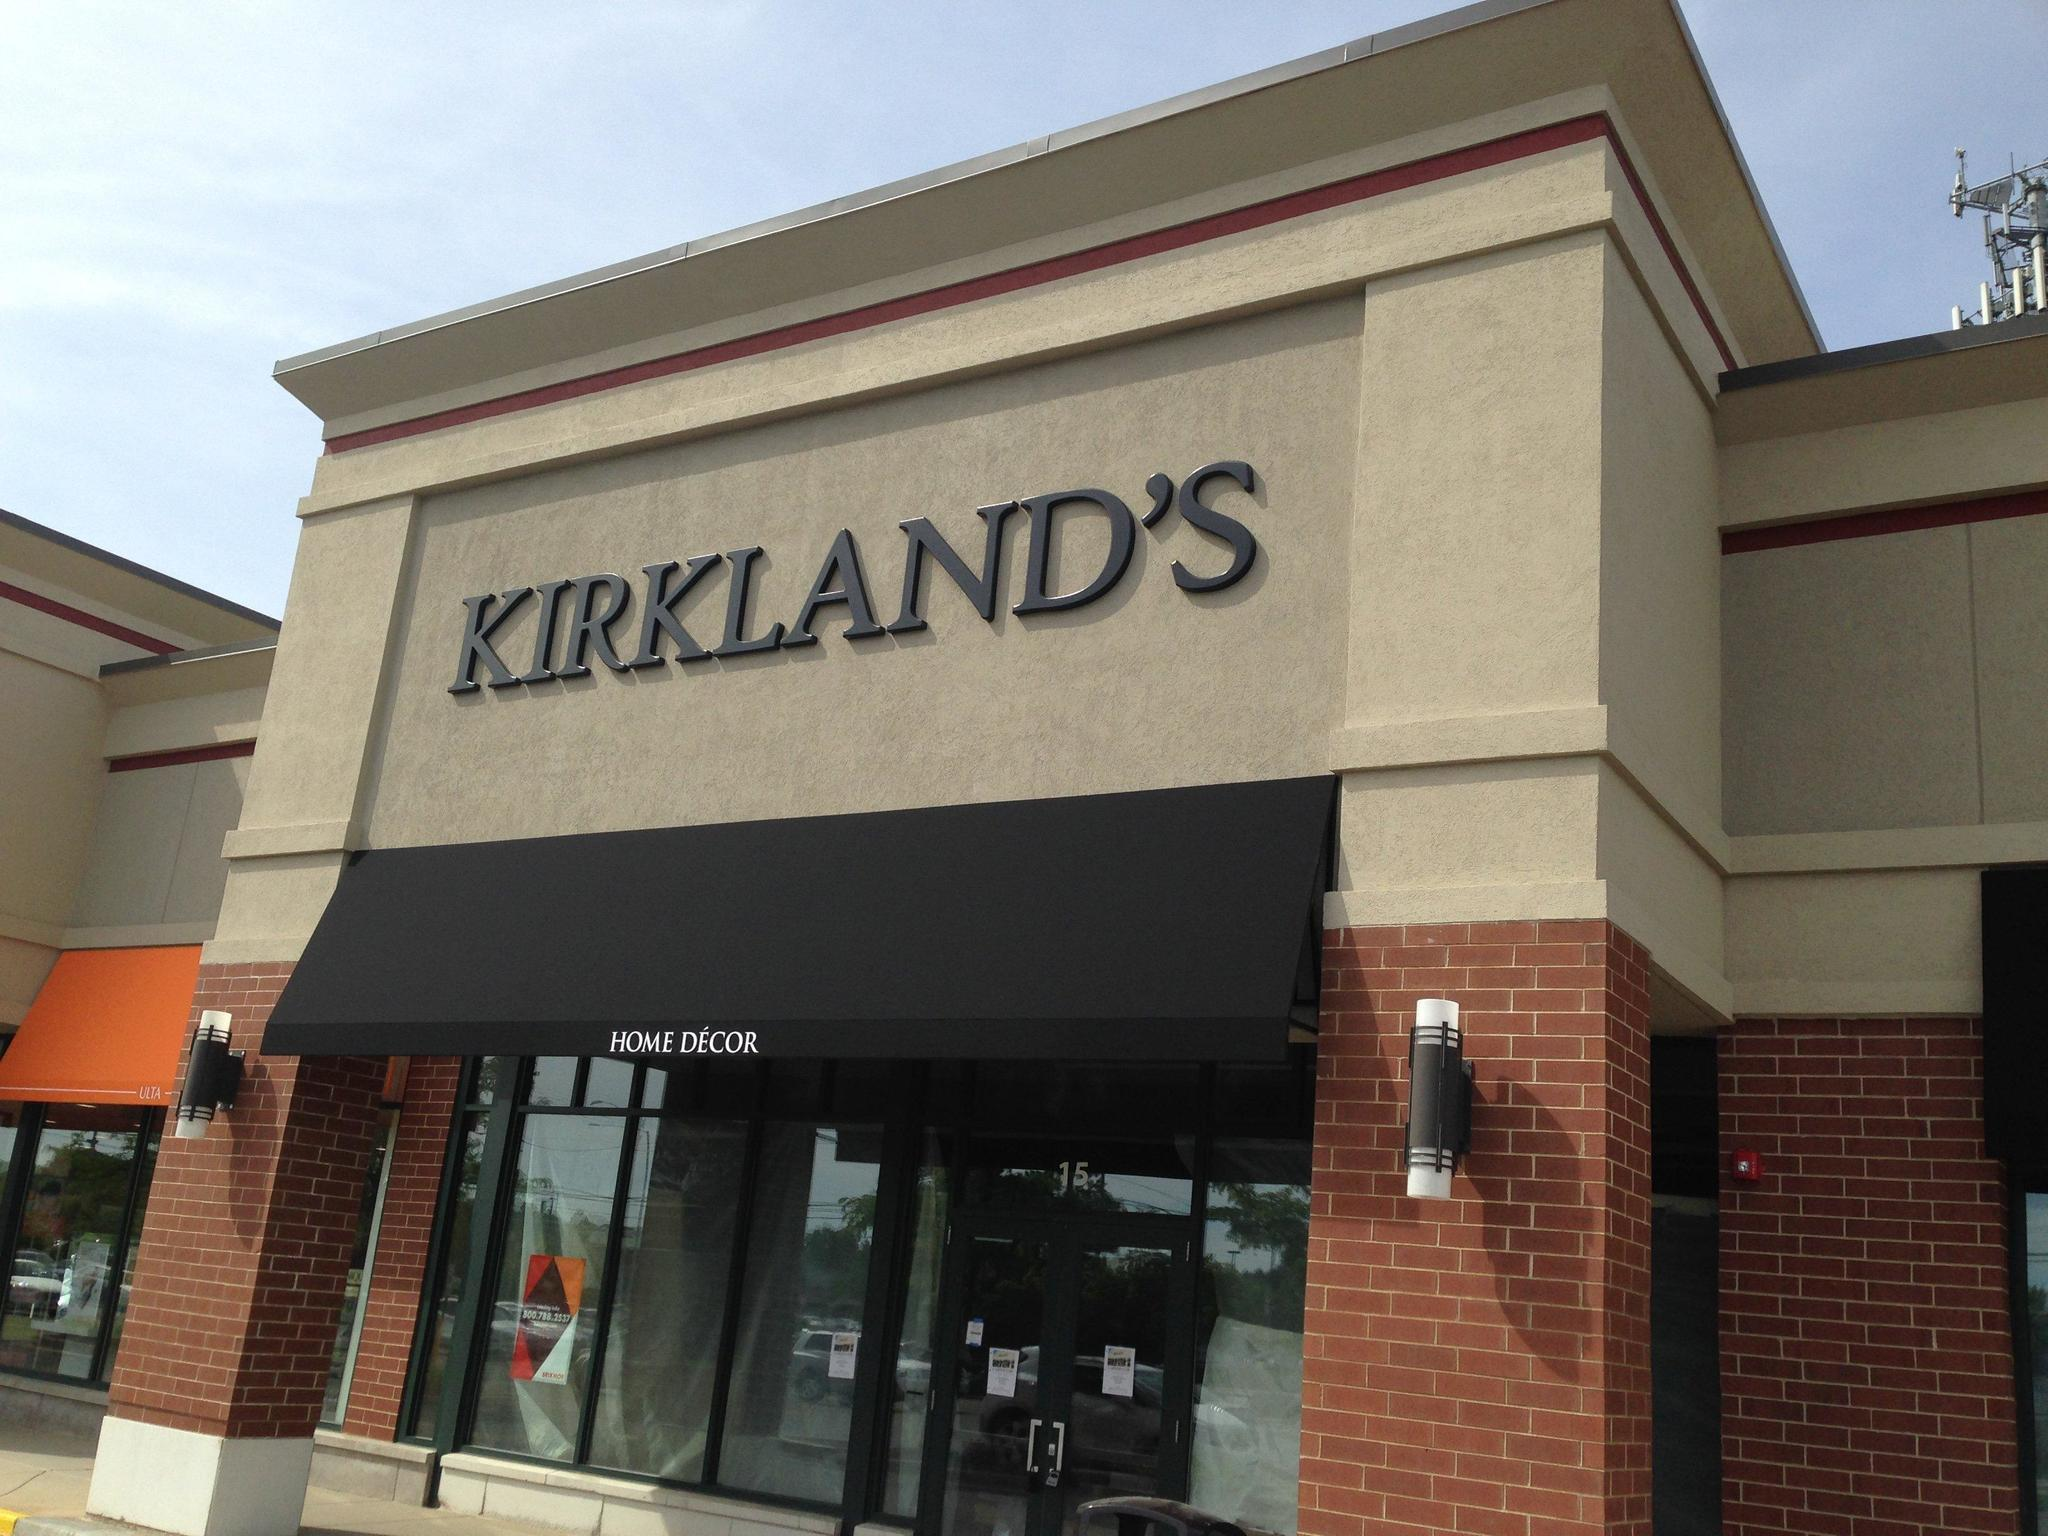 Home decor retailer Kirkland's planning new store in ... on Kirkland's Decor Home Accents id=34067